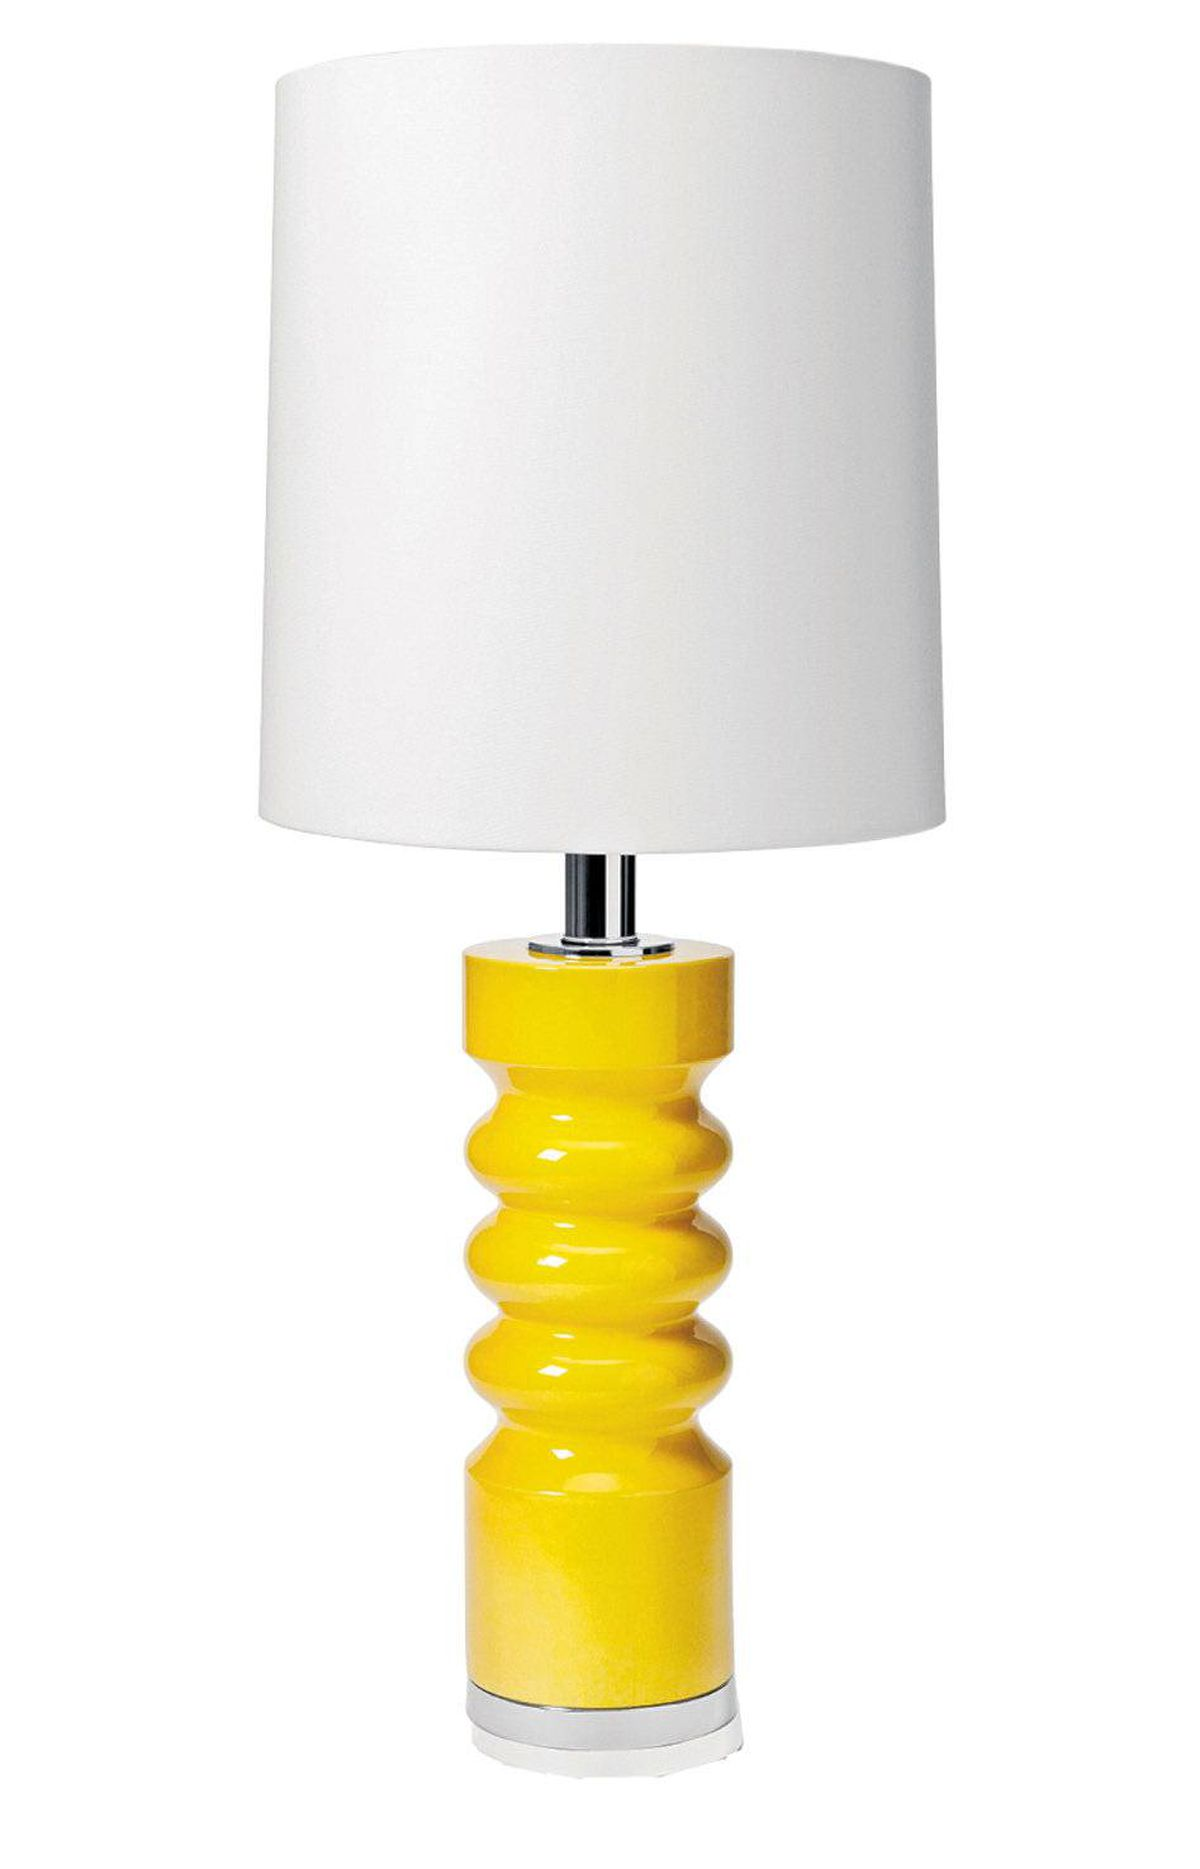 Snap up some restyled vintage lighting from blogger and designer Lia Fagan (or ask her to customize a lamp just for you). Nico Twins restyled vintage lamp, $450 per pair through Mod Pieces (www.modpieces.ca).